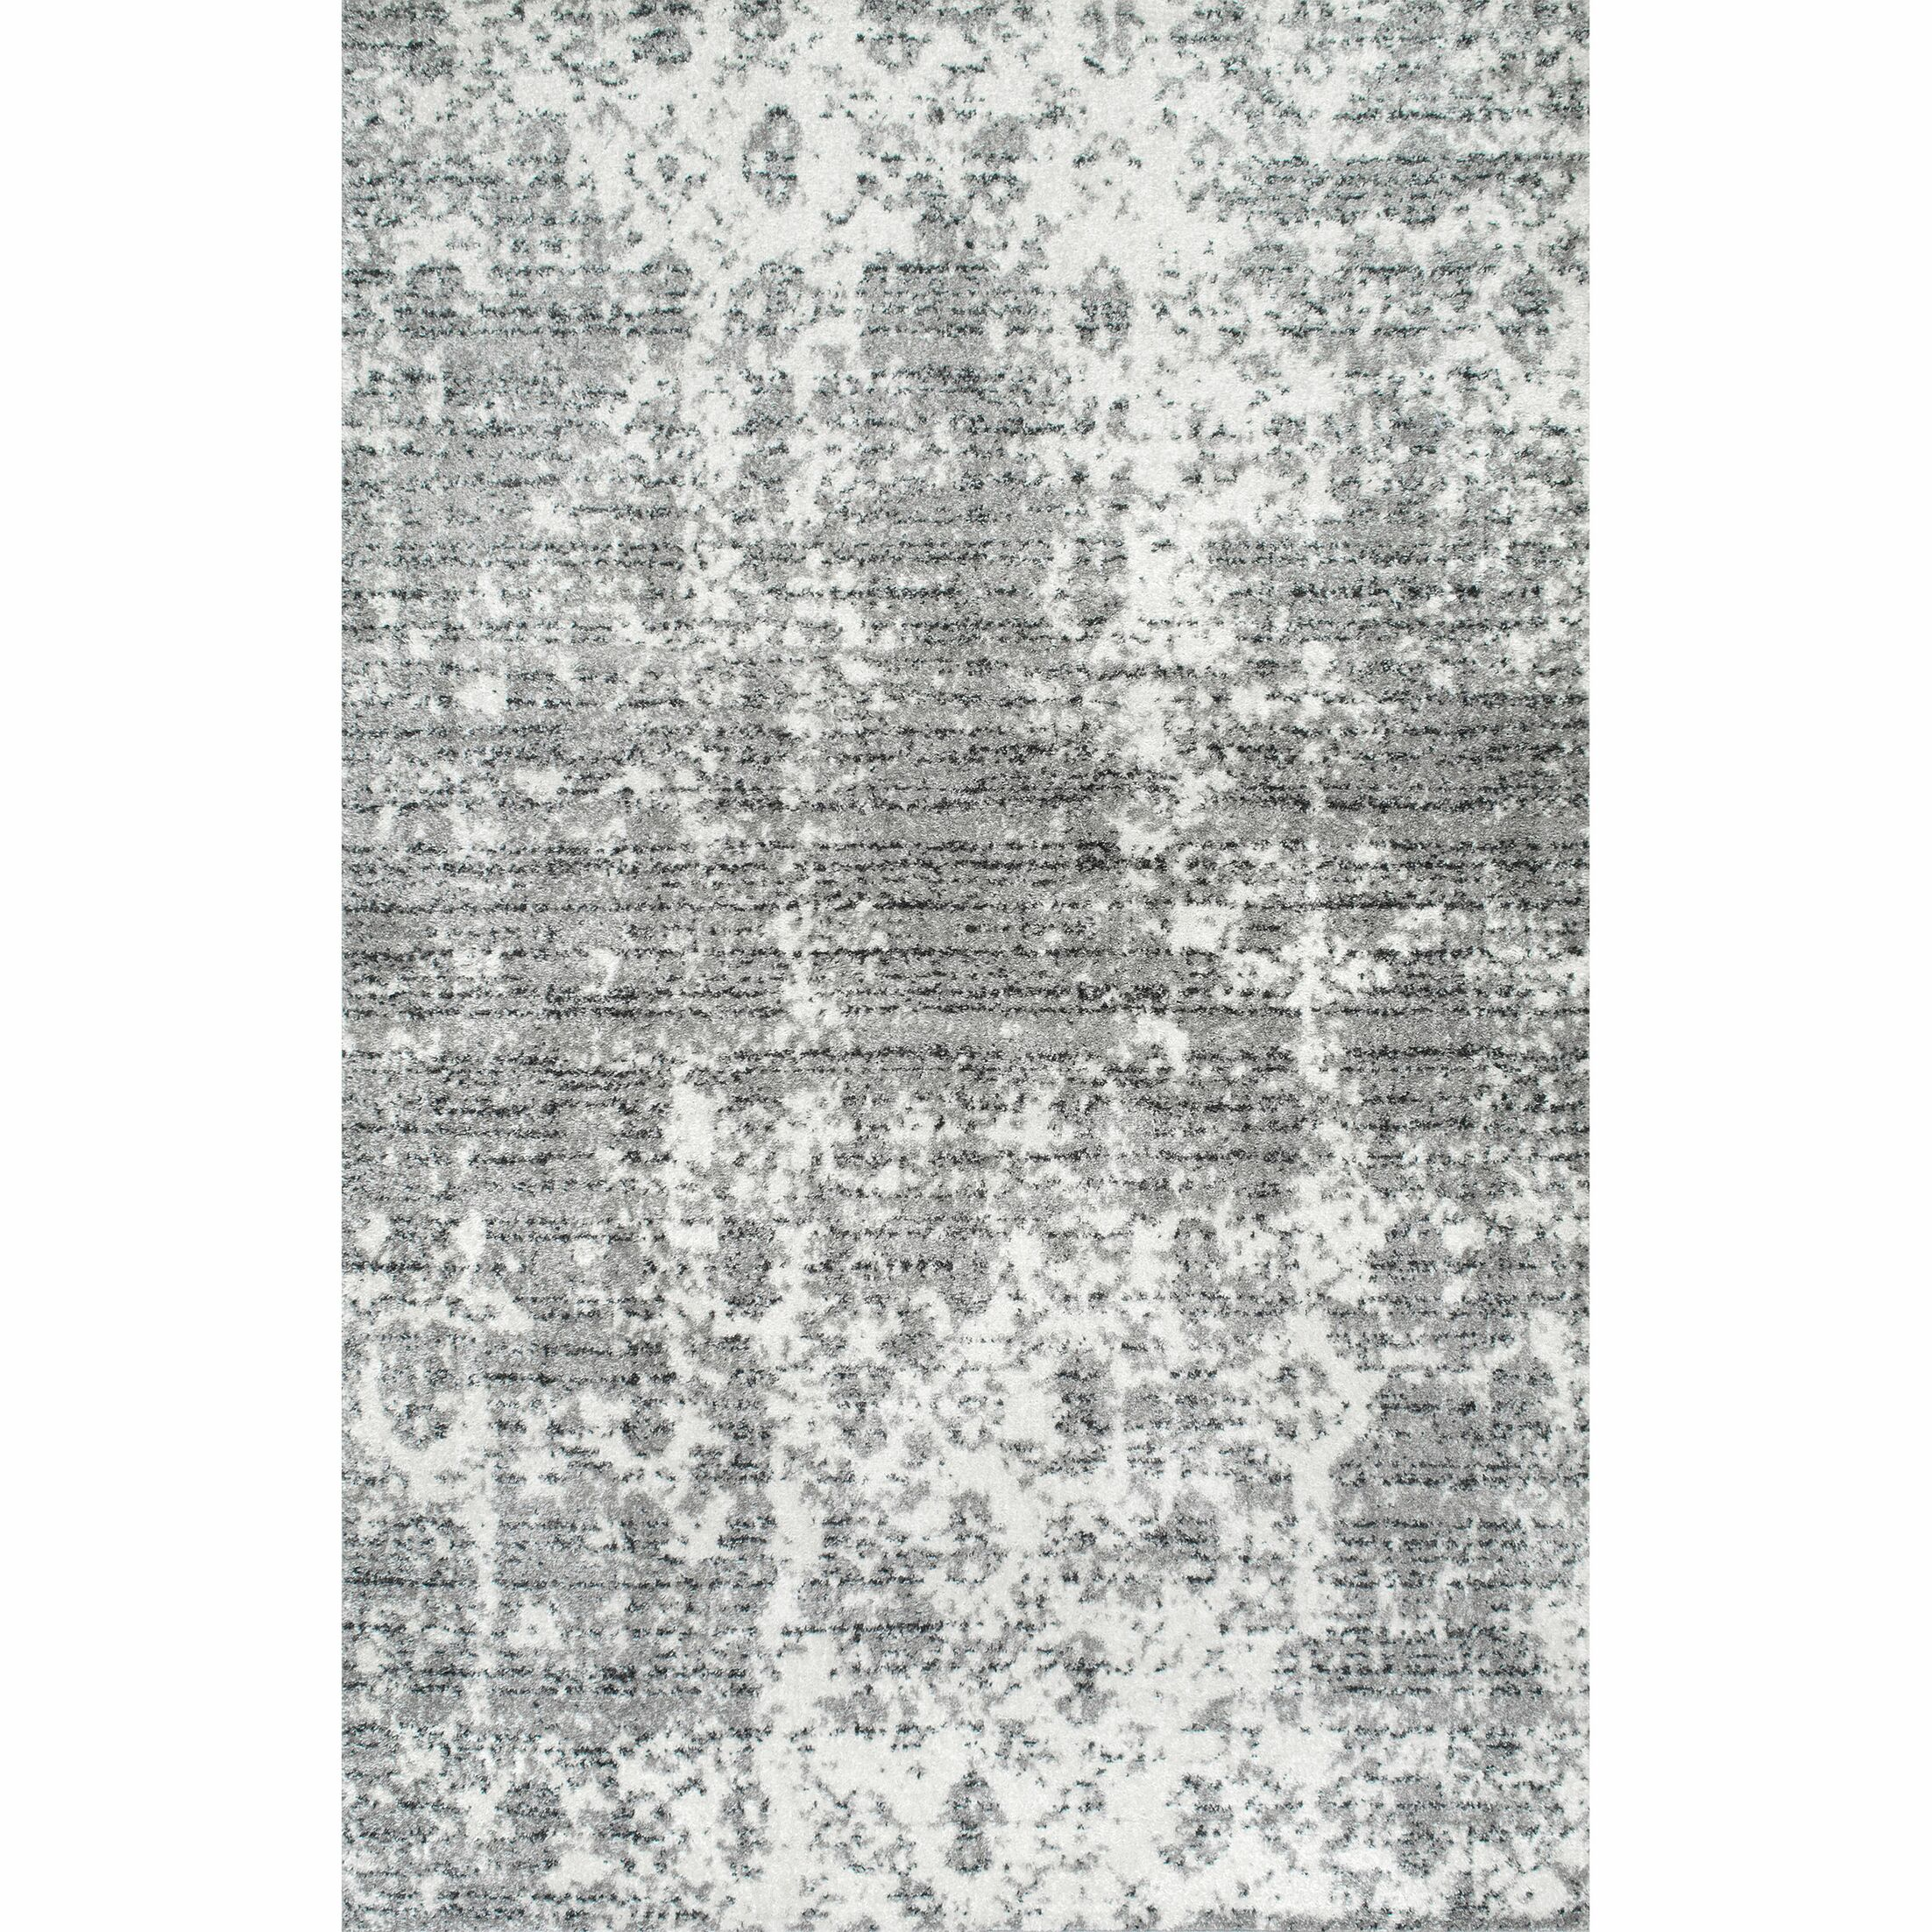 Bloom Gray Area Rug Rug Size: Rectangle 10' x 14'